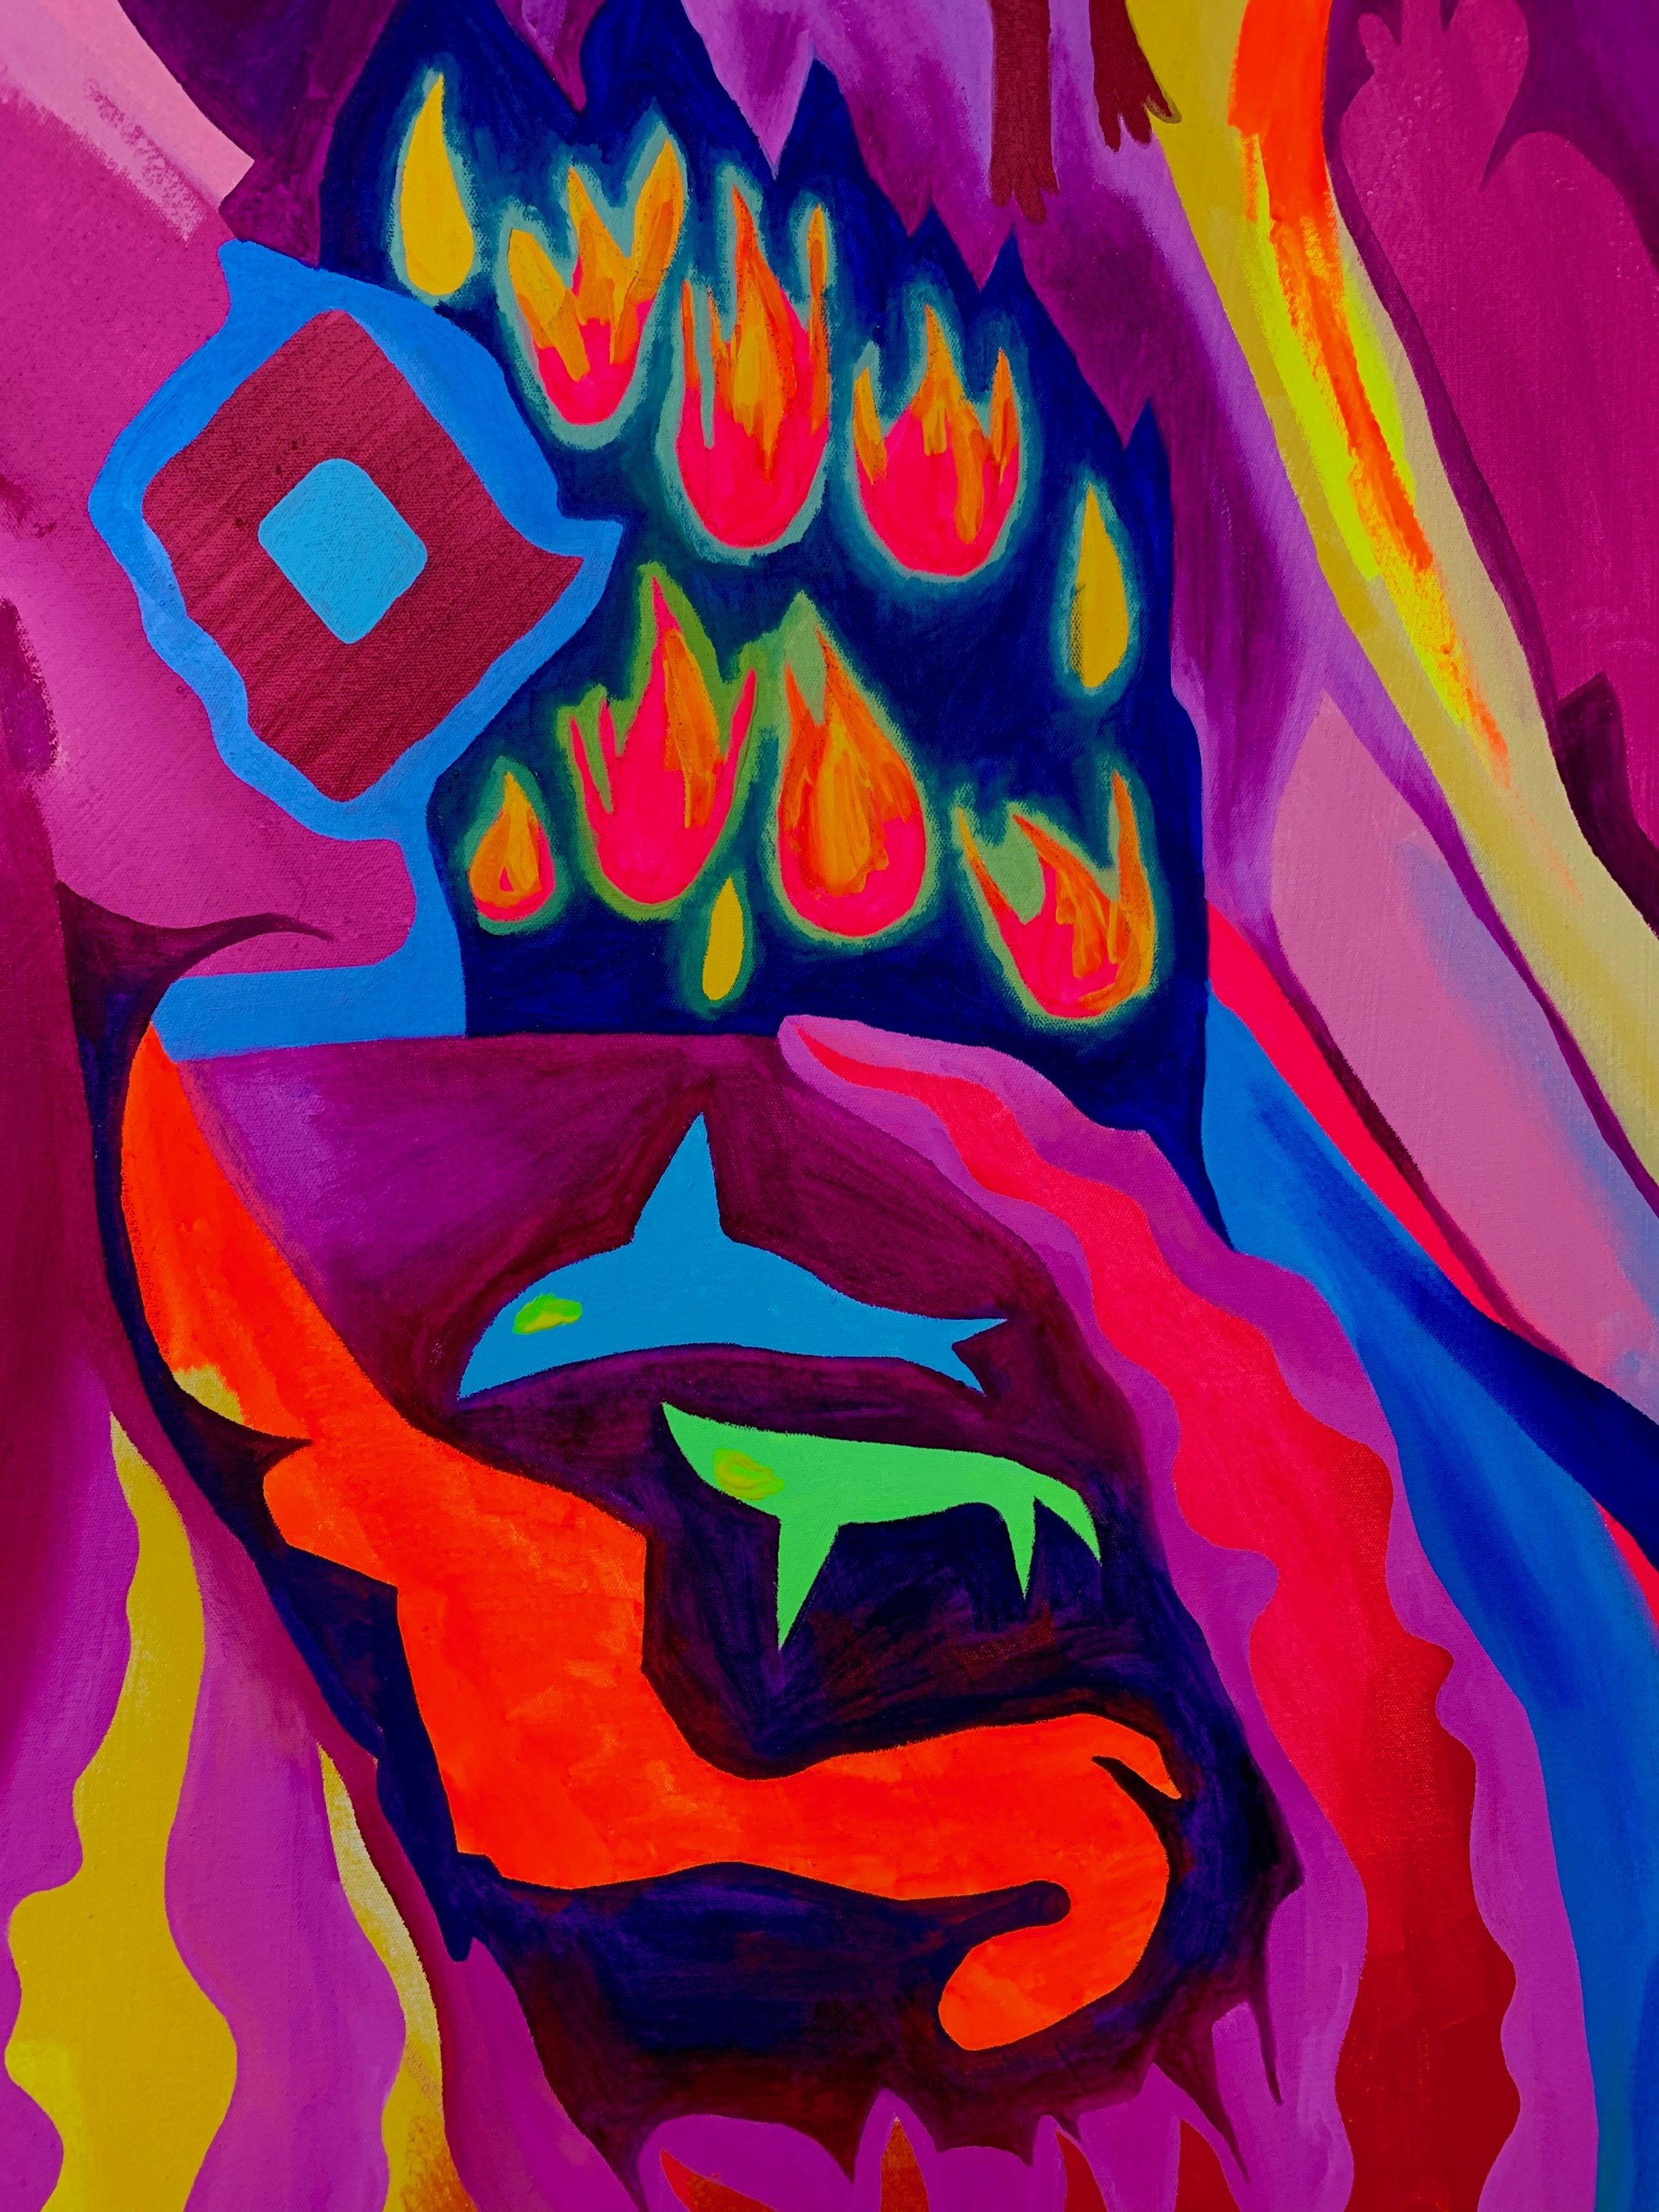 Large-scale, multicolored abstract painting